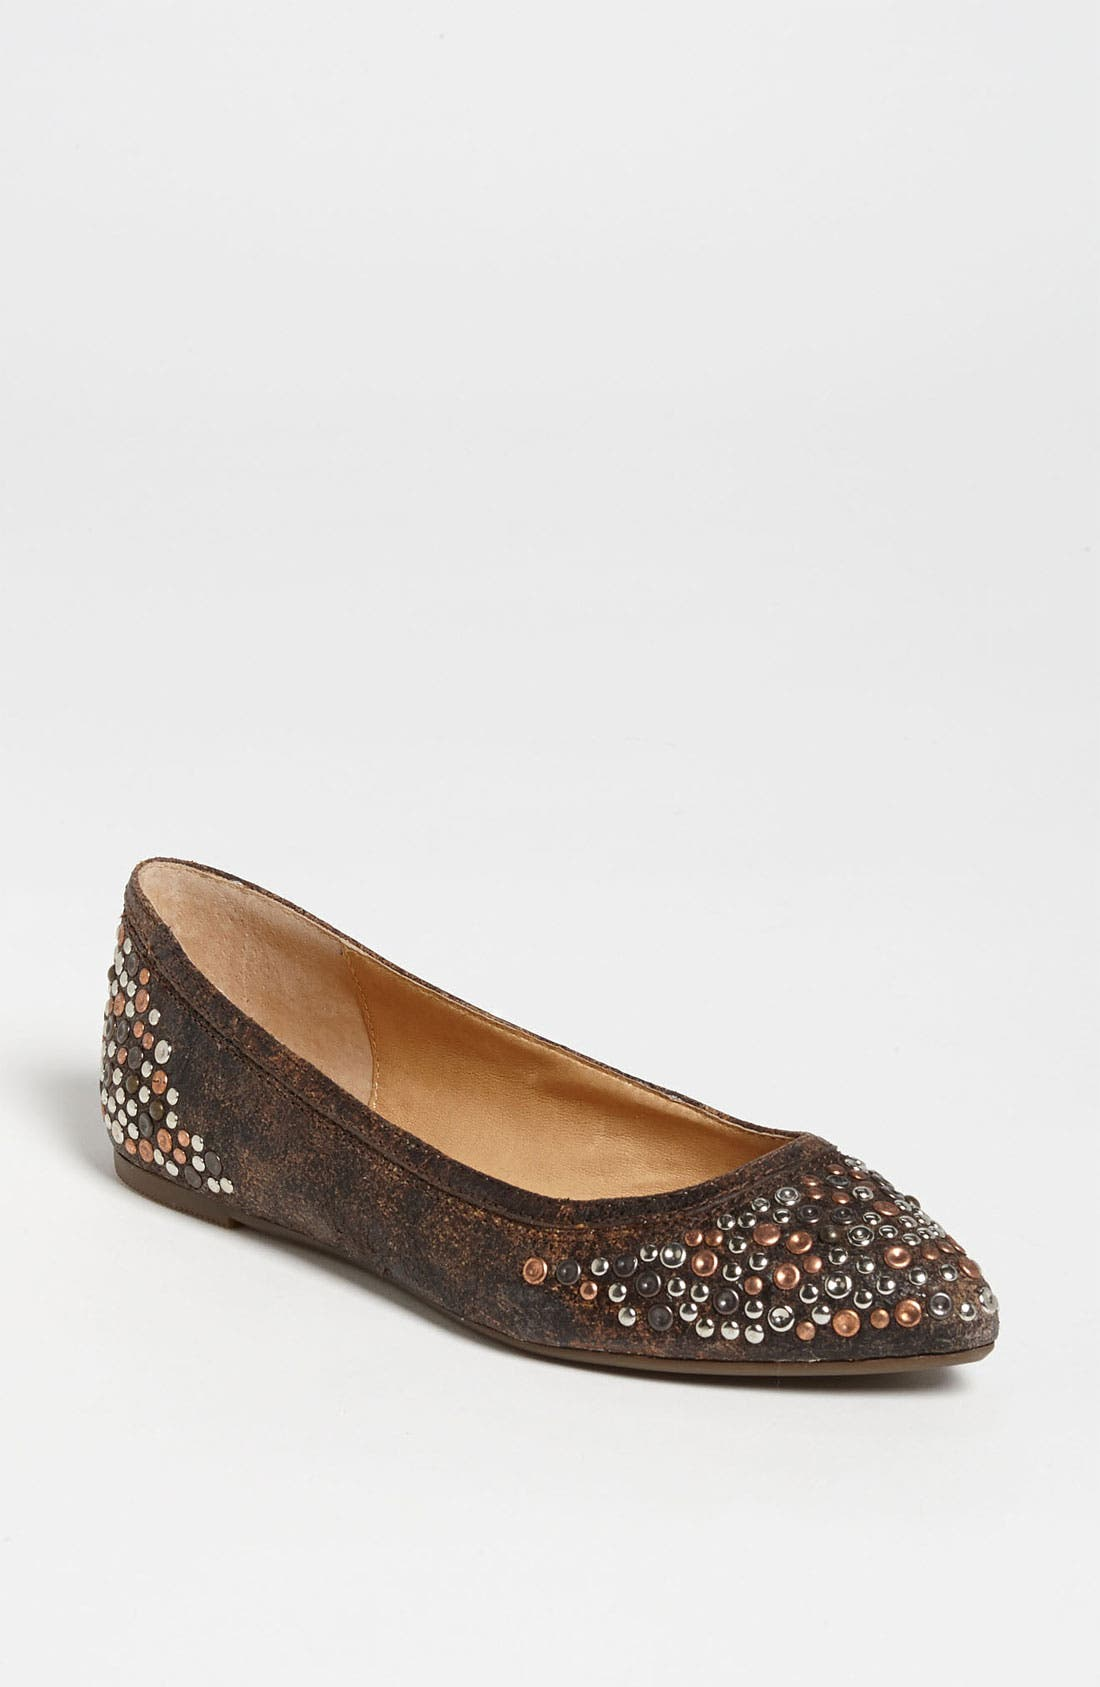 Alternate Image 1 Selected - Frye 'Regina' Studded Flat